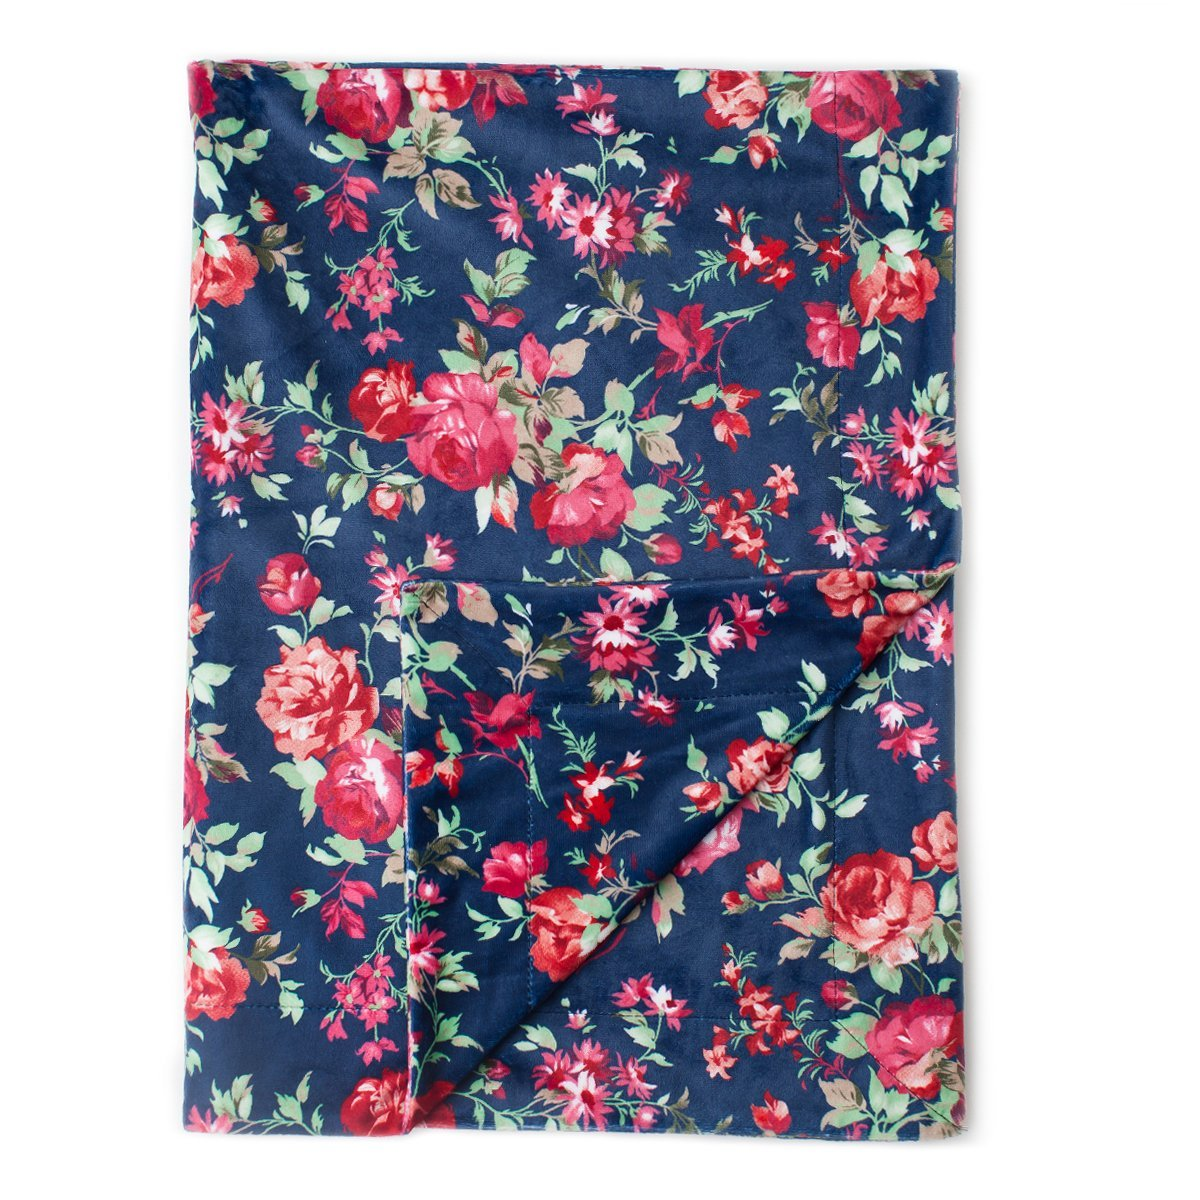 Kids N' Such Minky Baby Blanket 30'' x 40'' - Navy Floral - Soft Swaddle Blanket for Newborns and Toddlers - Best for Girl Crib Bedding, Nursery, and Security - Plush Double Layer Fleece Fabric